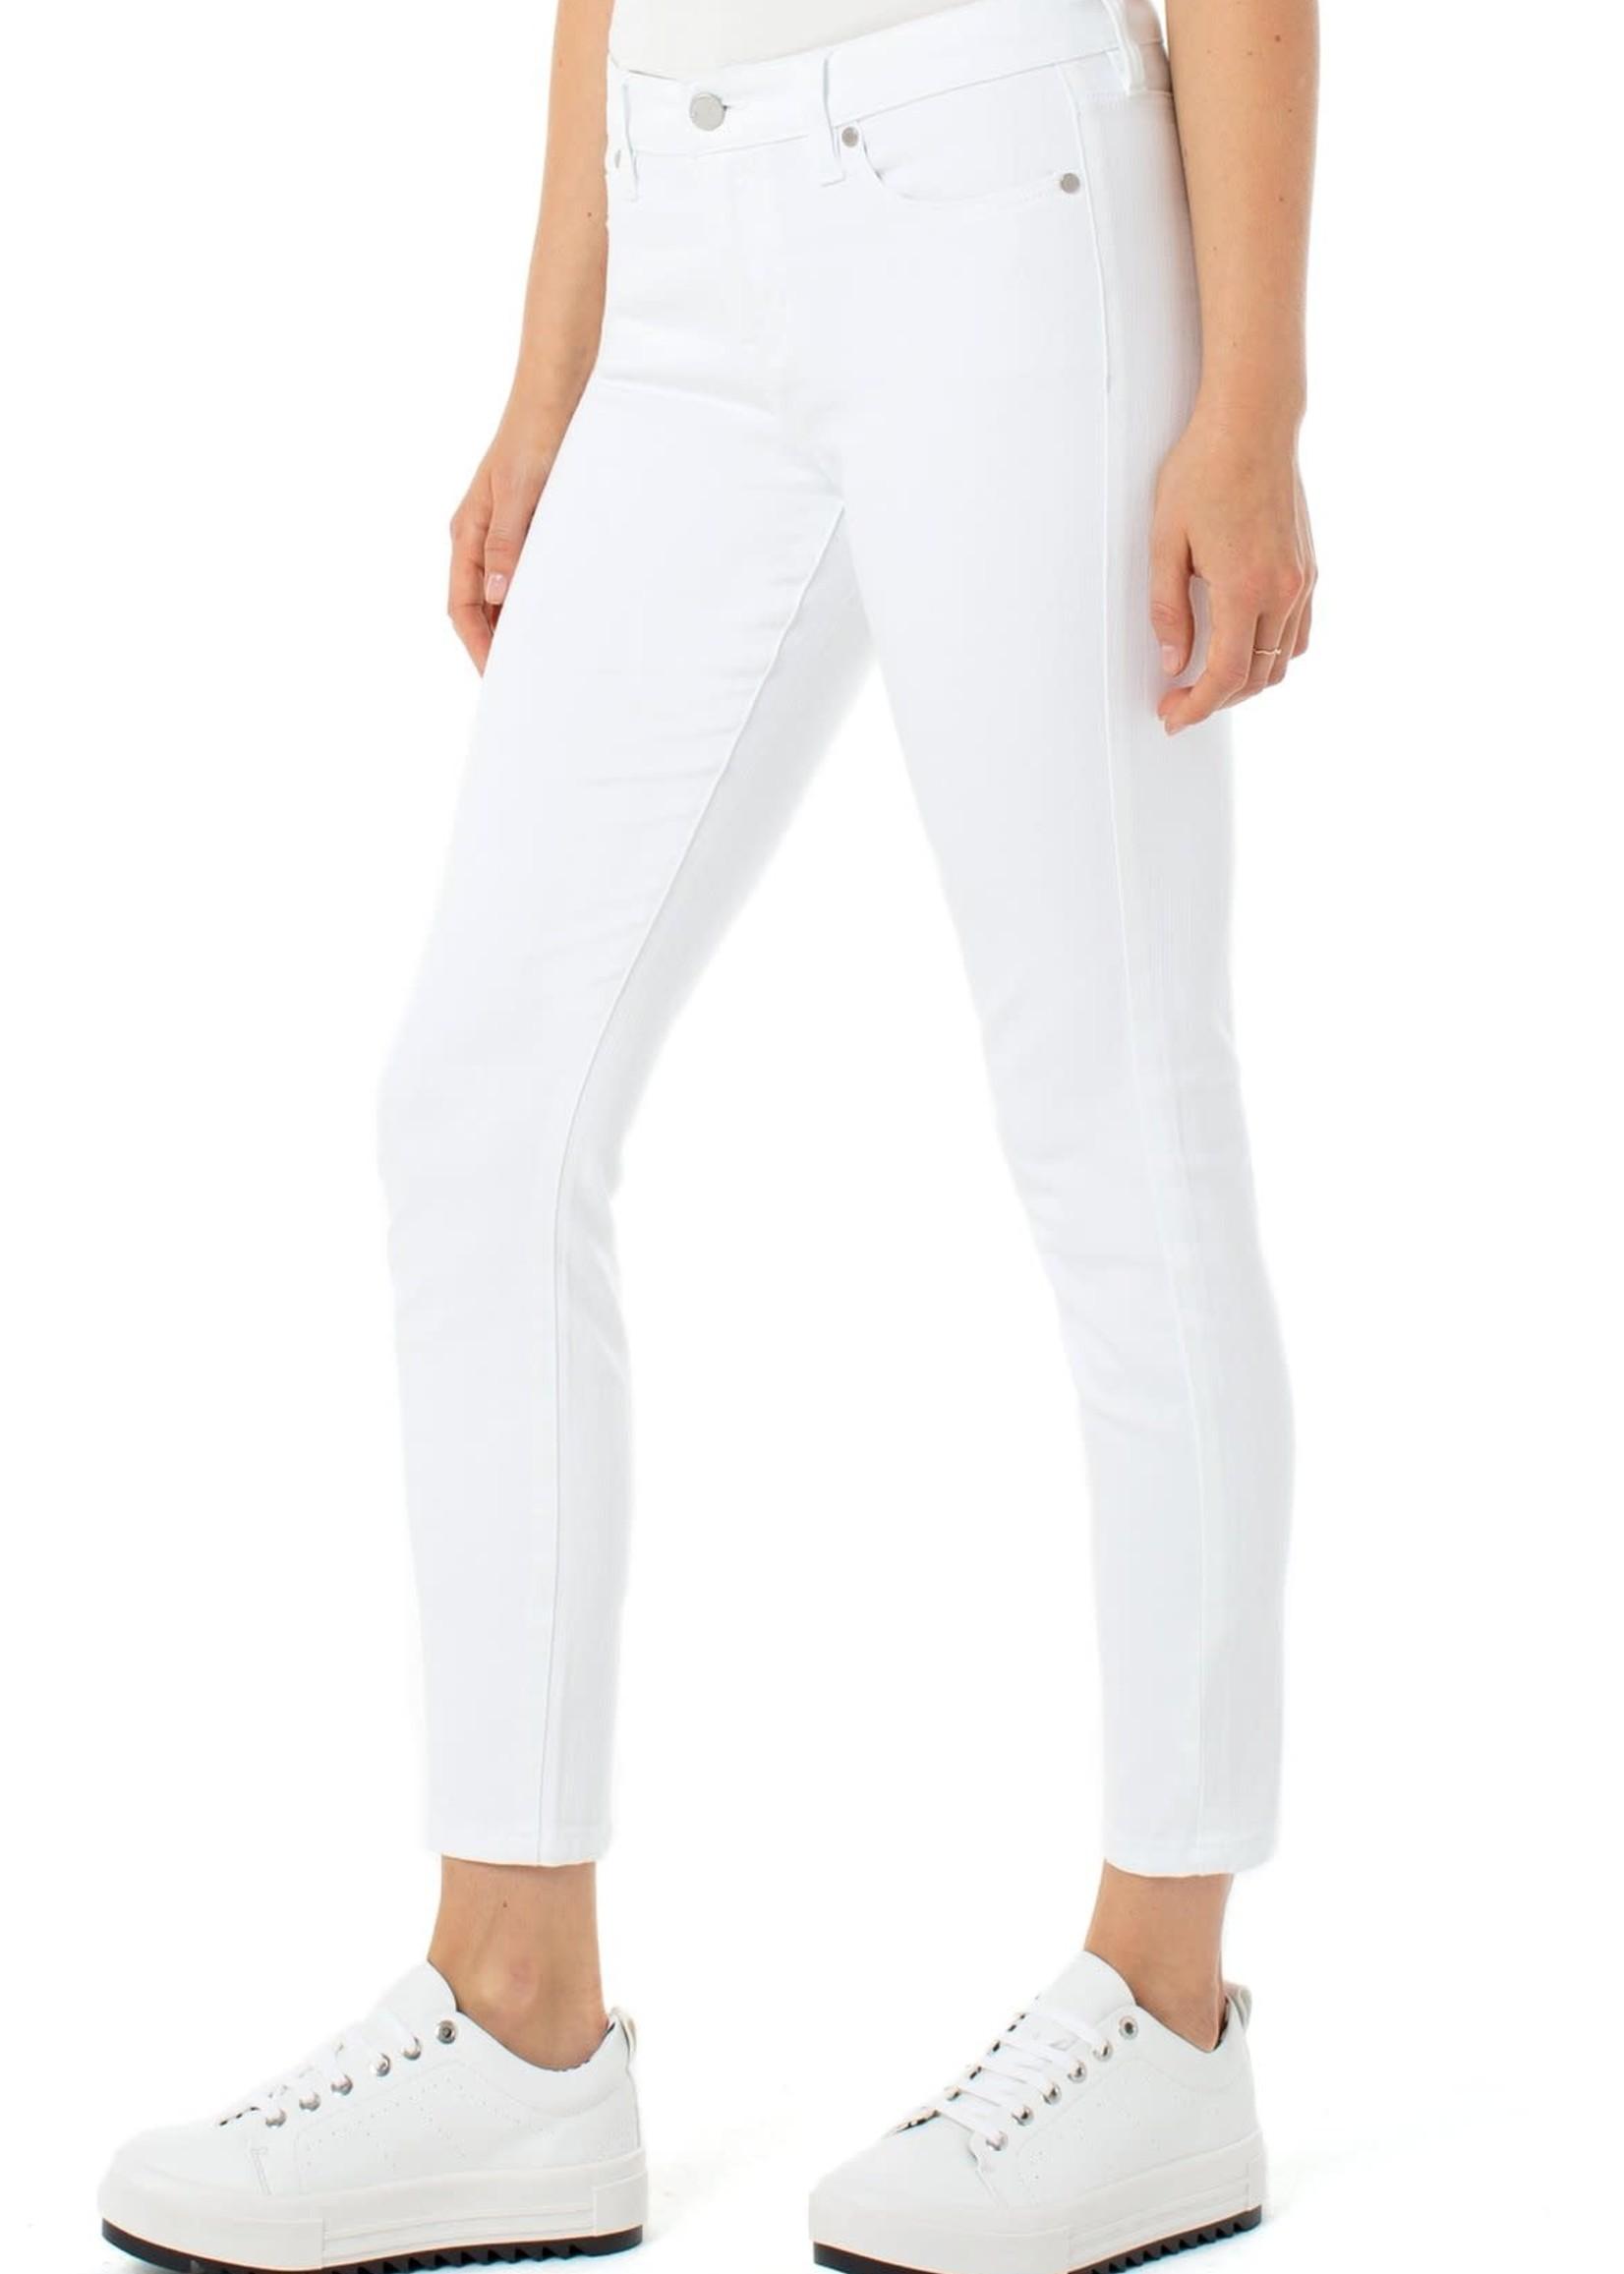 Liverpool Jeans Abby Hi-Rise Skinny White